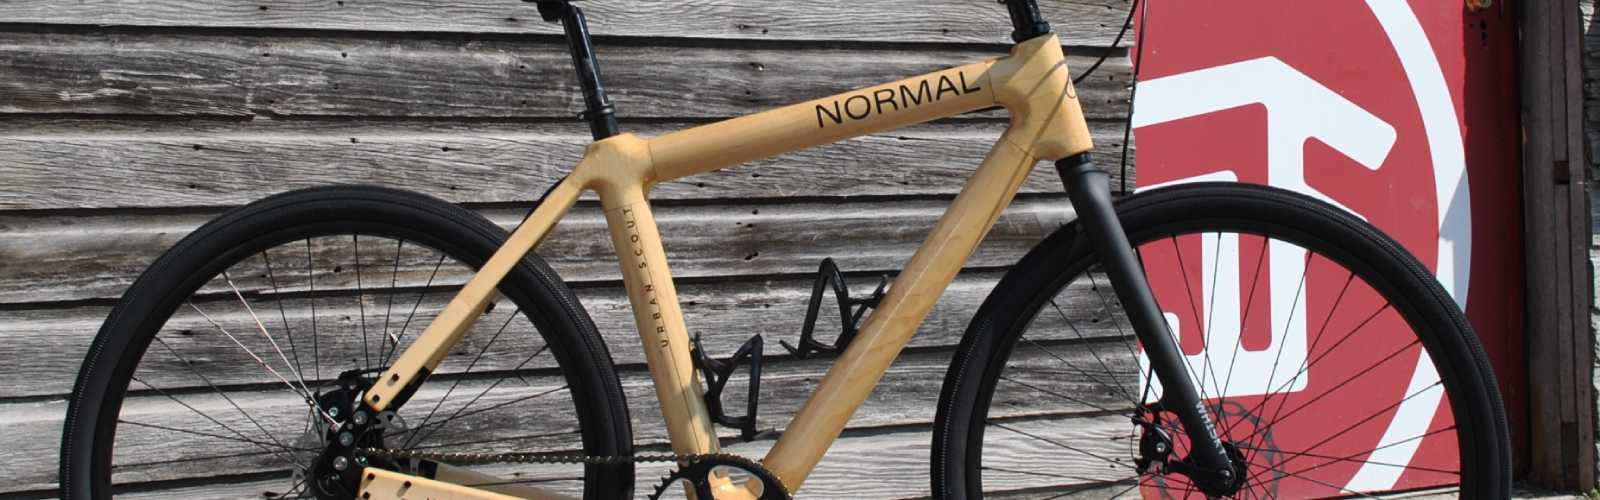 Normal Bicycles are constructed from multiple layers of glued wood veneer, creating a wood composite as strong as fiber or steel. <span class='image-credits'>Normal Bicycles</span>